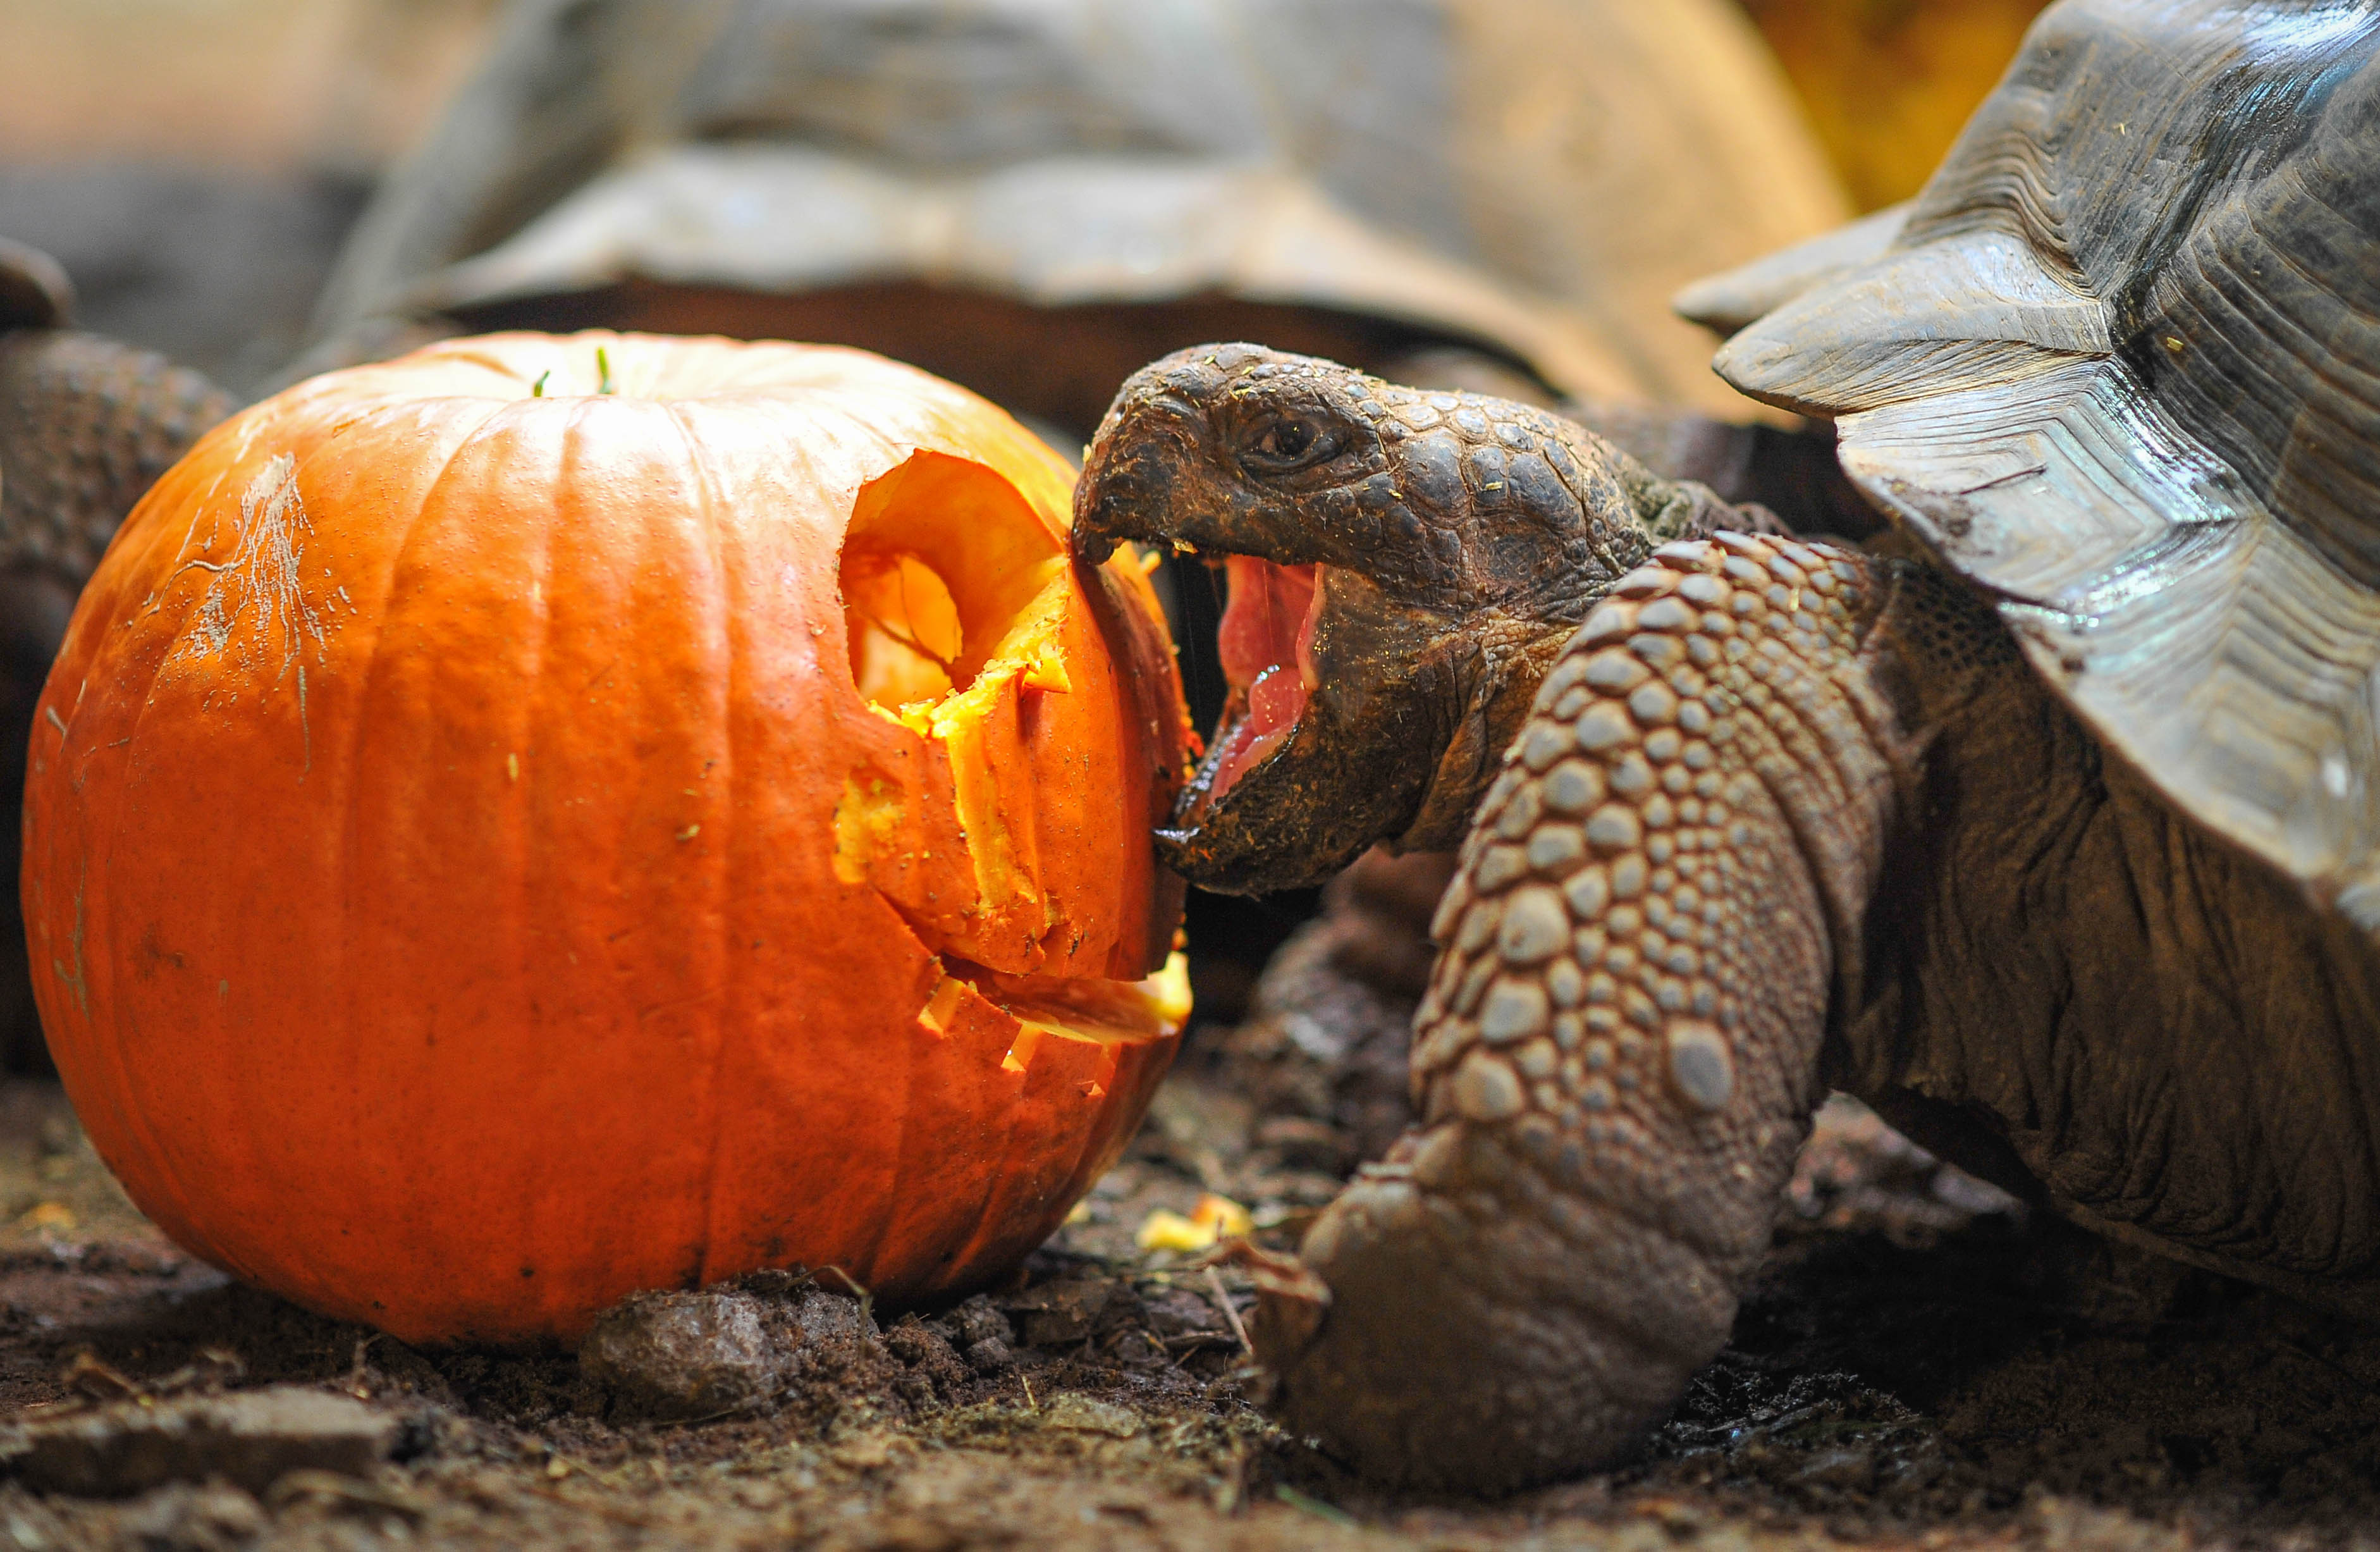 7 zoo animals having a great time with pumpkins this Halloween